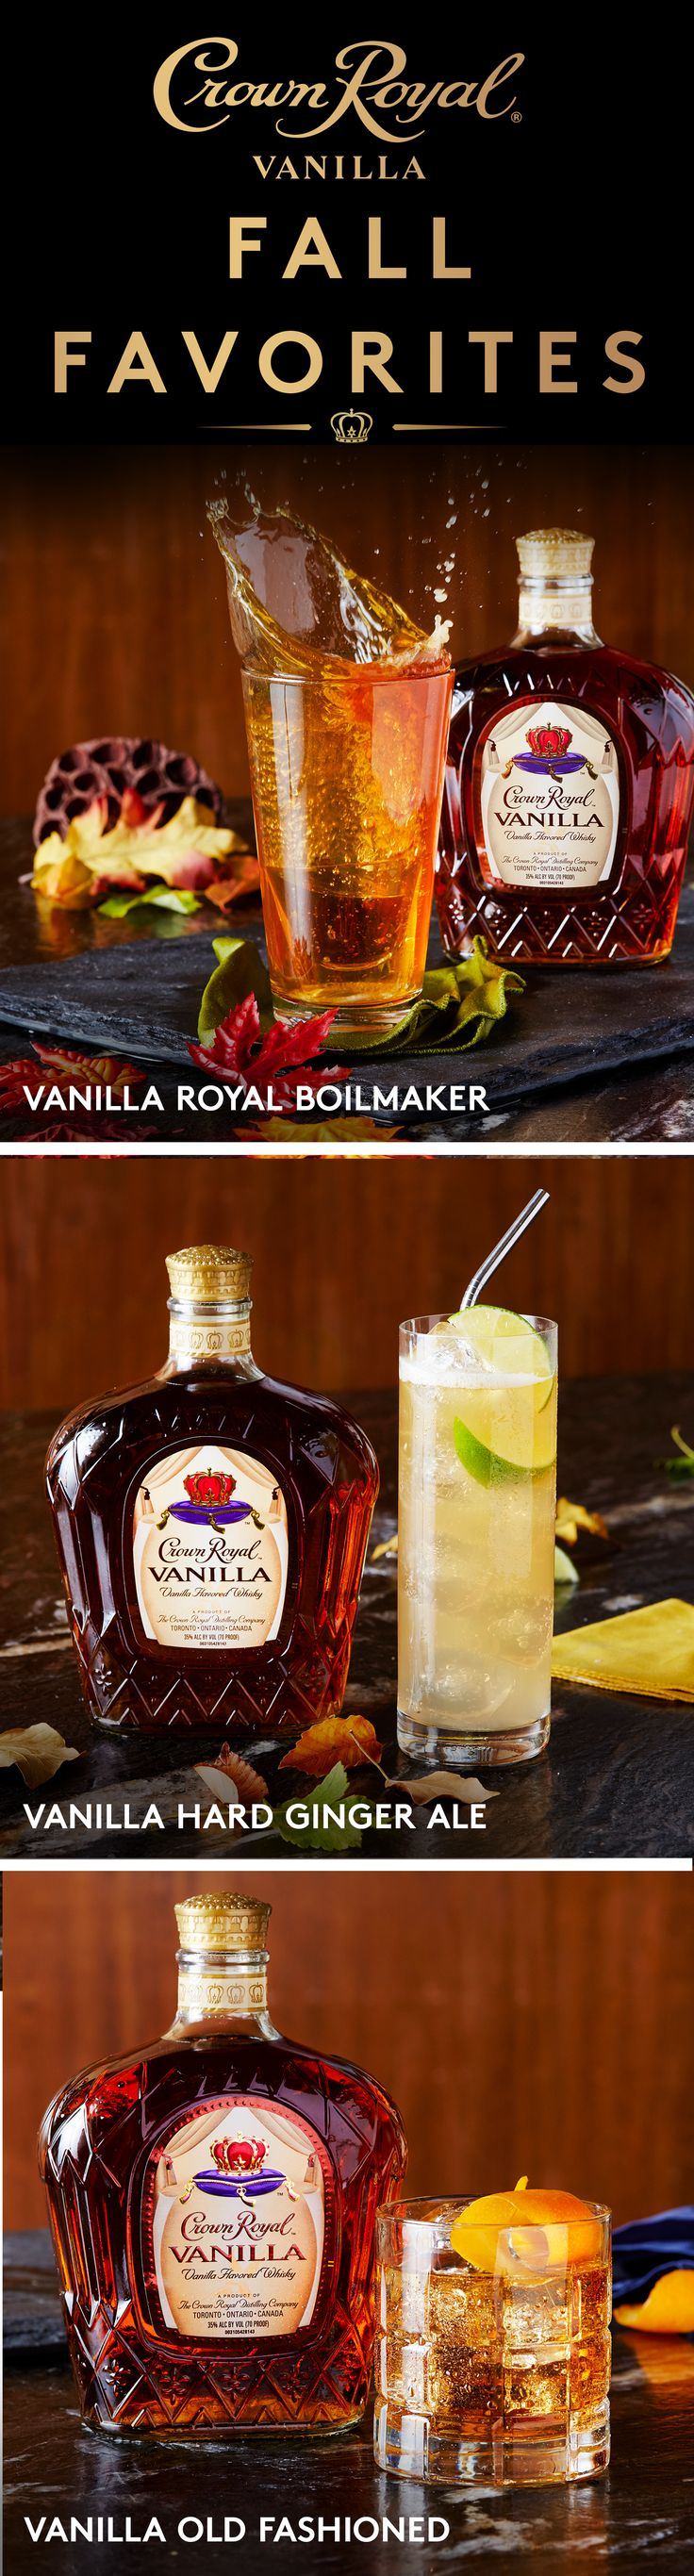 Celebrate the season with one of these delicious Crown Royal drinks featuring new Crown Royal Vanilla. Mix this versatile blend in your favorite hard soda recipe, paired with your favorite beer, or serve it in a classic old fashioned cocktail, for you and your friends this weekend.